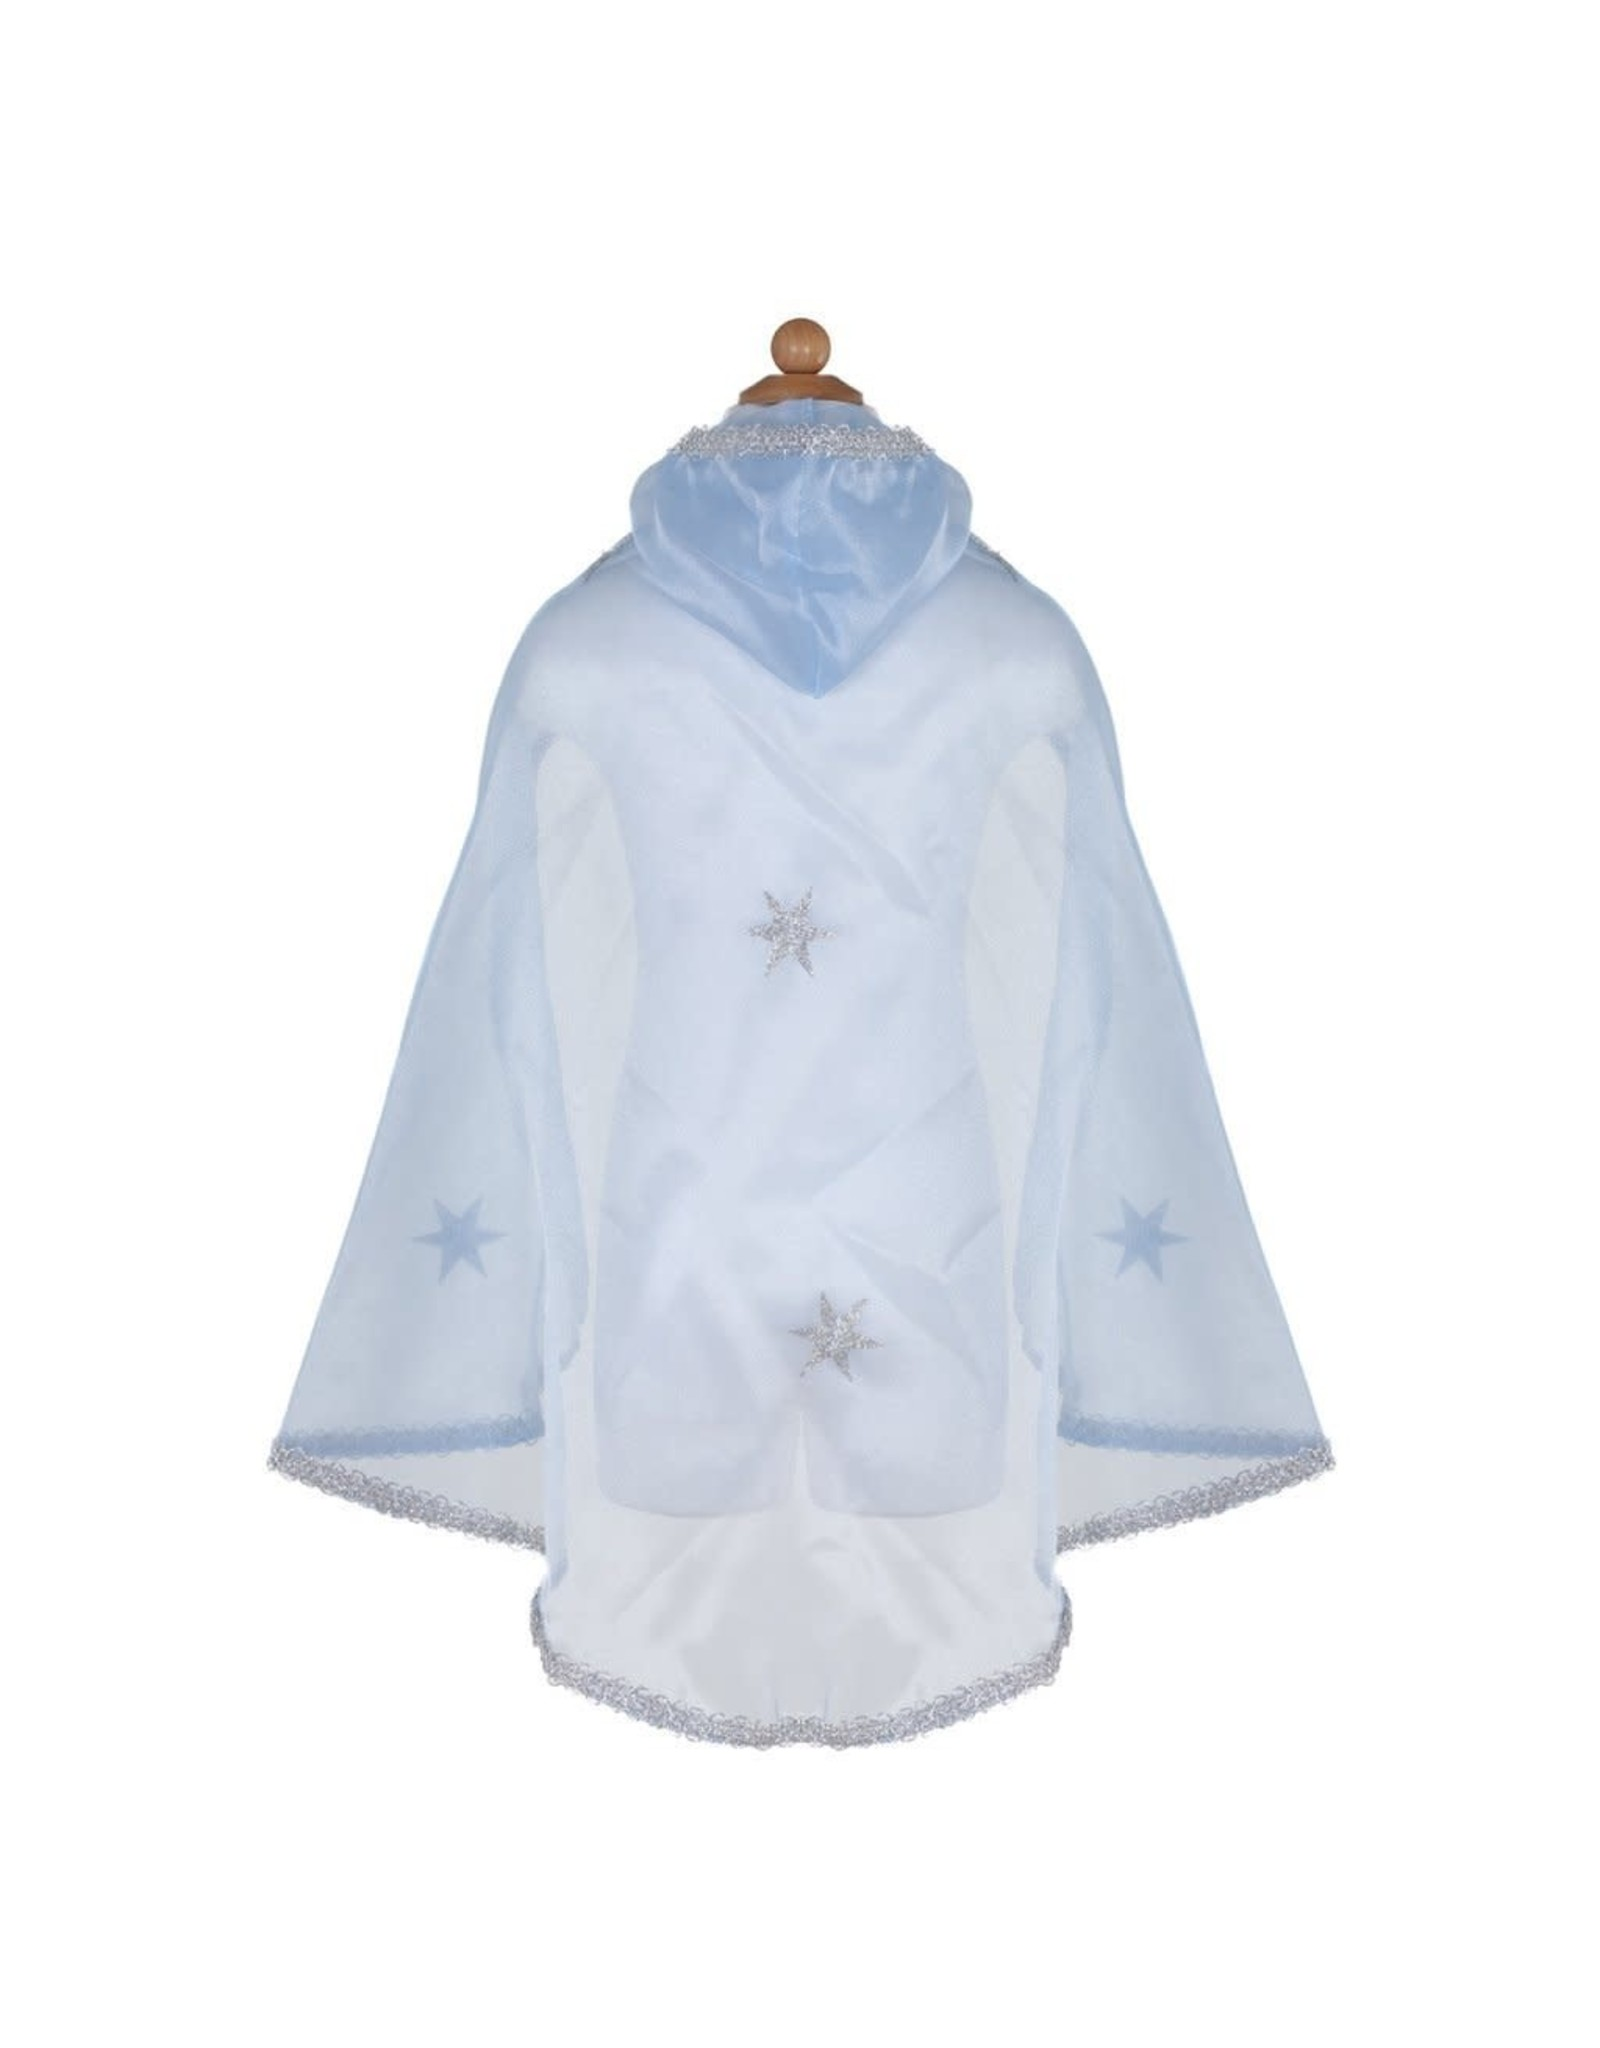 Children's Small Crystal Queen Cape